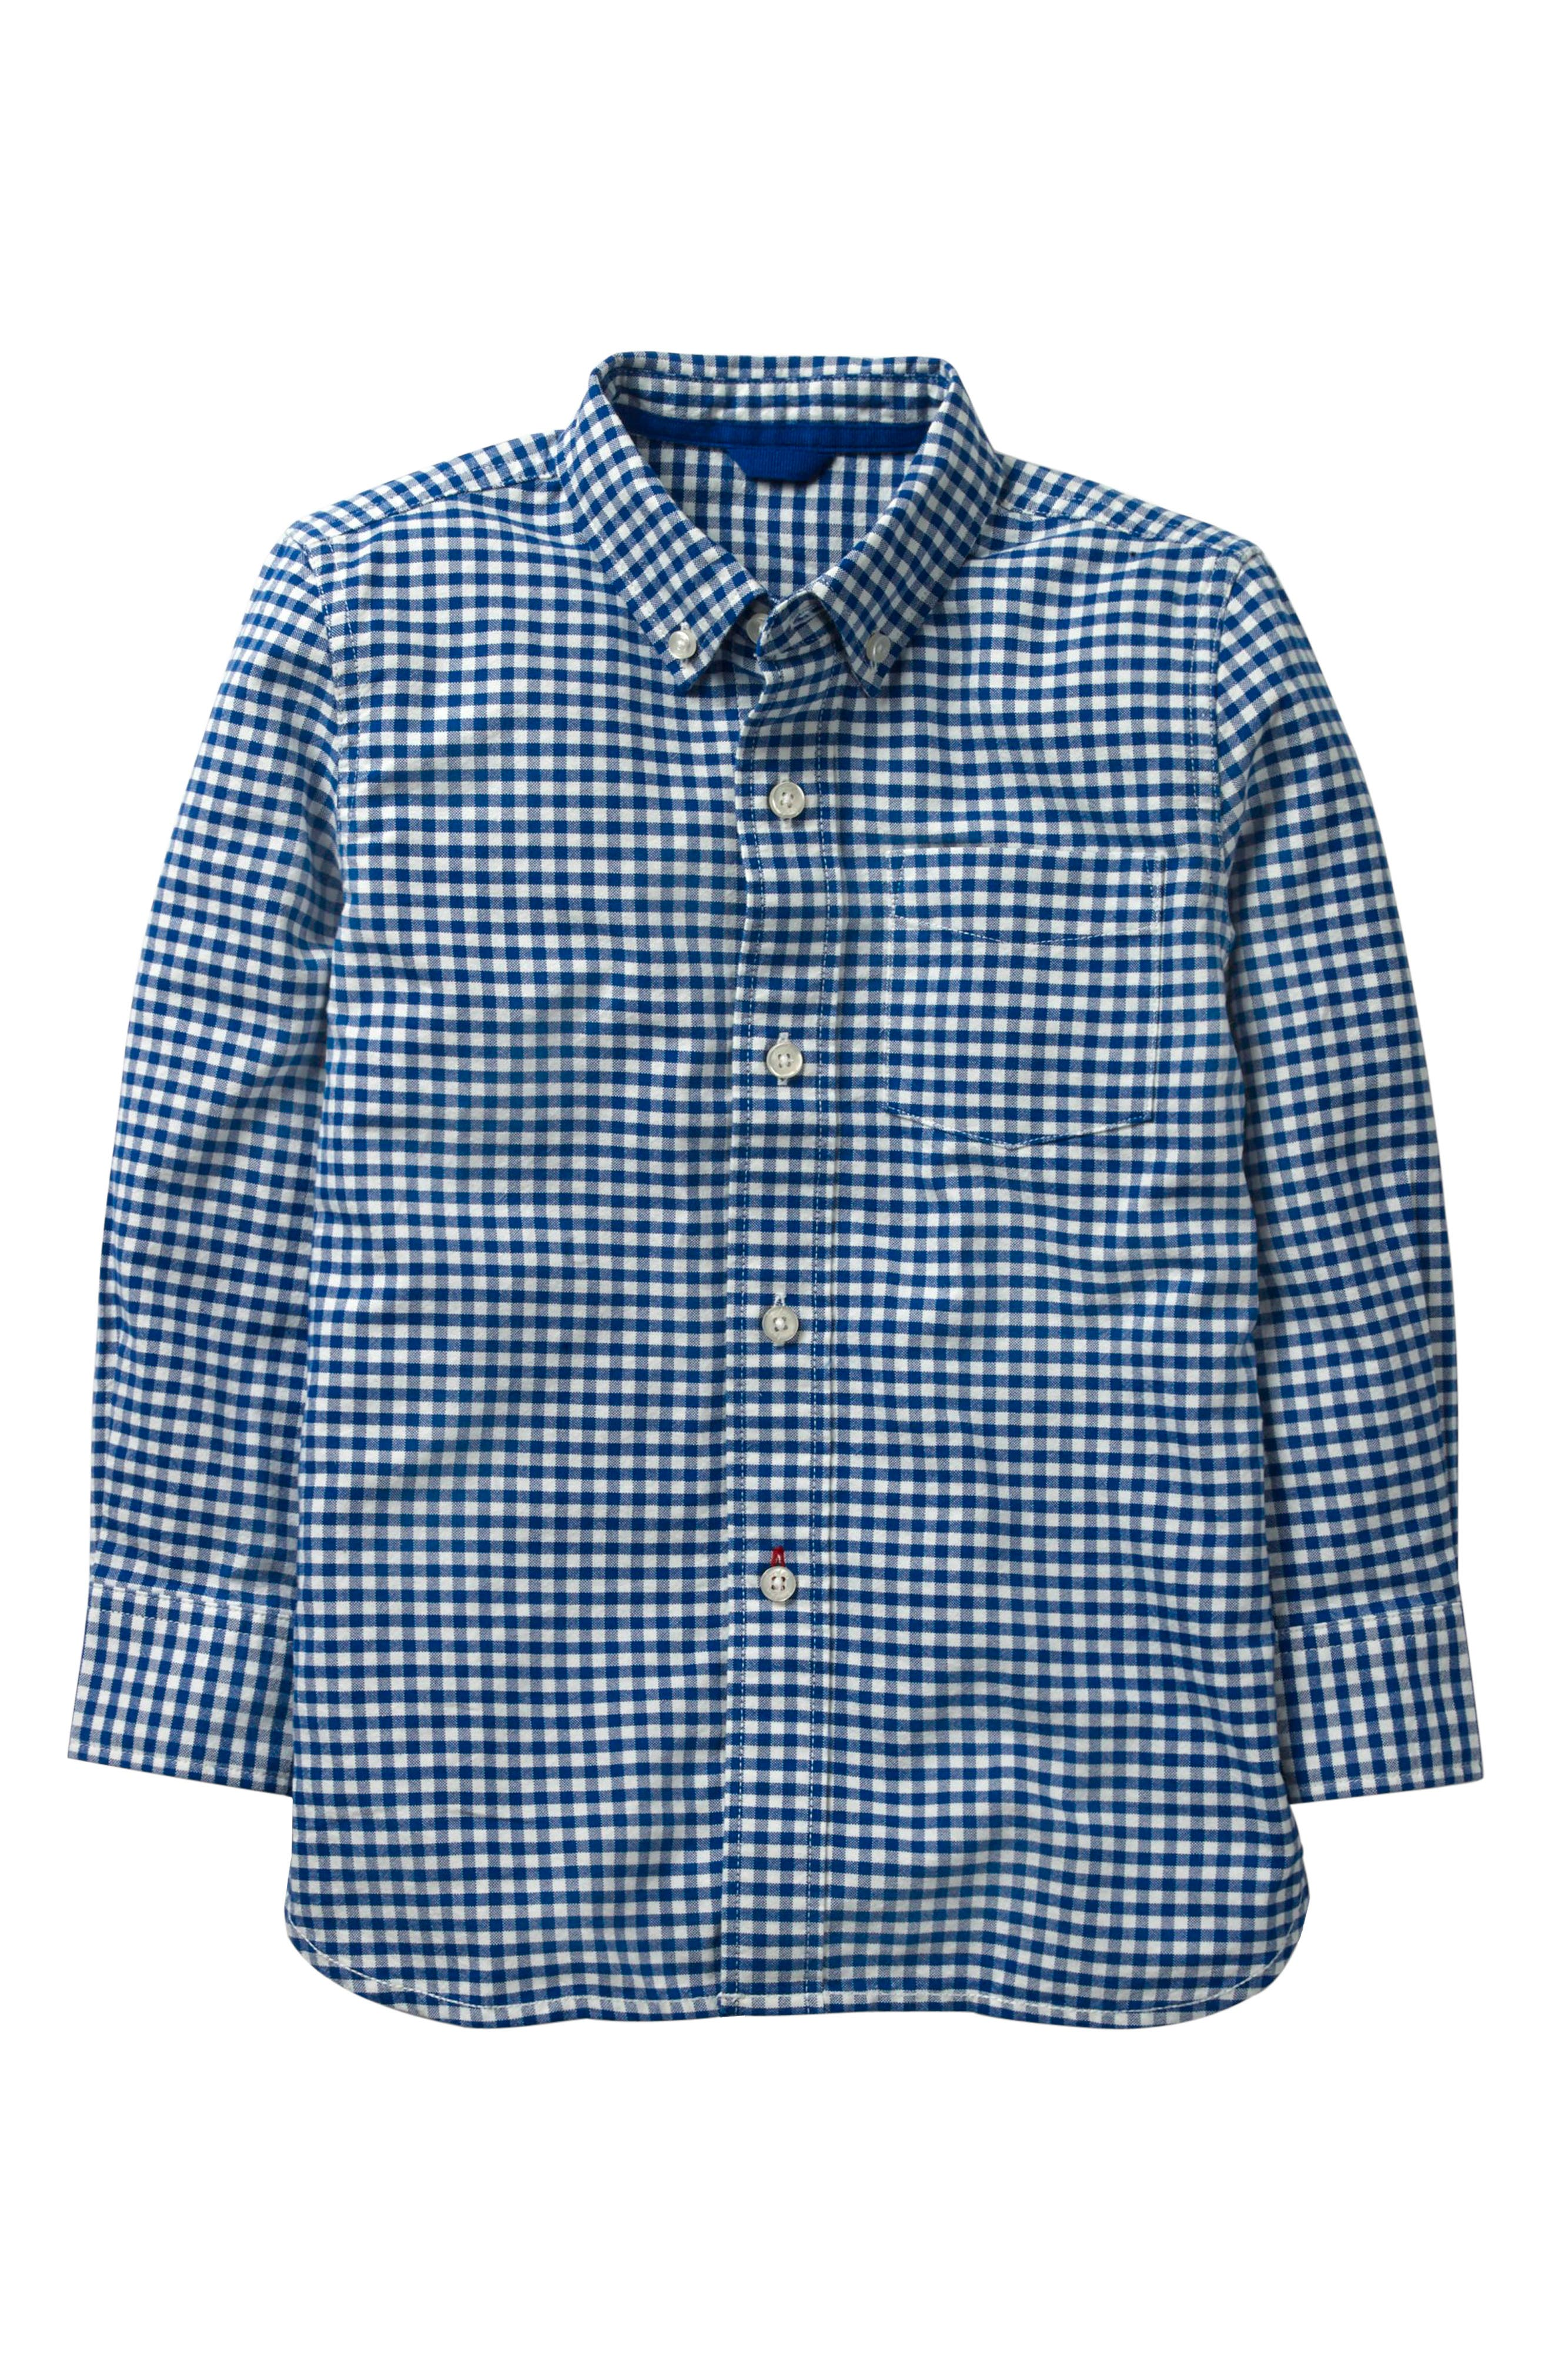 Gingham Oxford Shirt,                         Main,                         color, 454